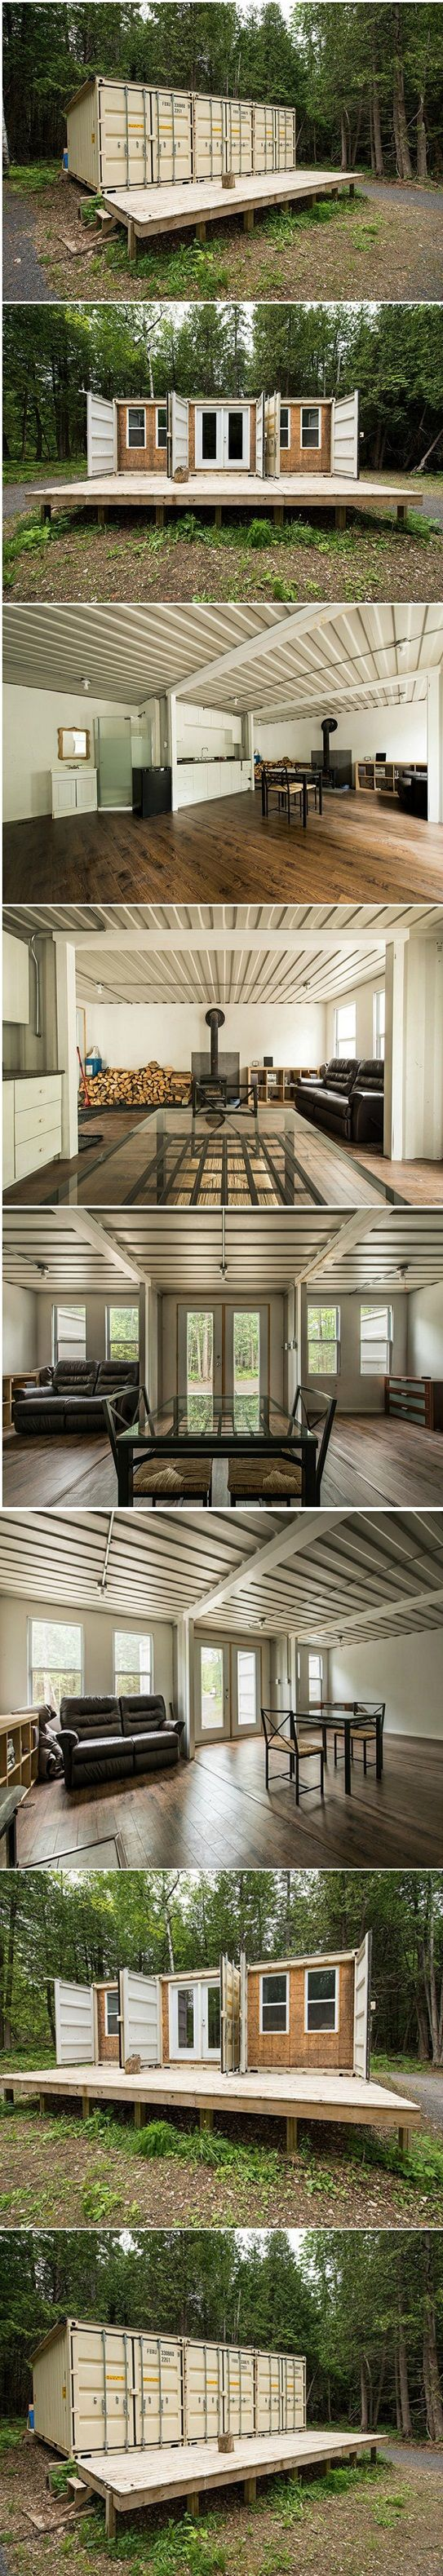 Cabin Built Out Of 3 Shipping Containers. This is so beautiful!